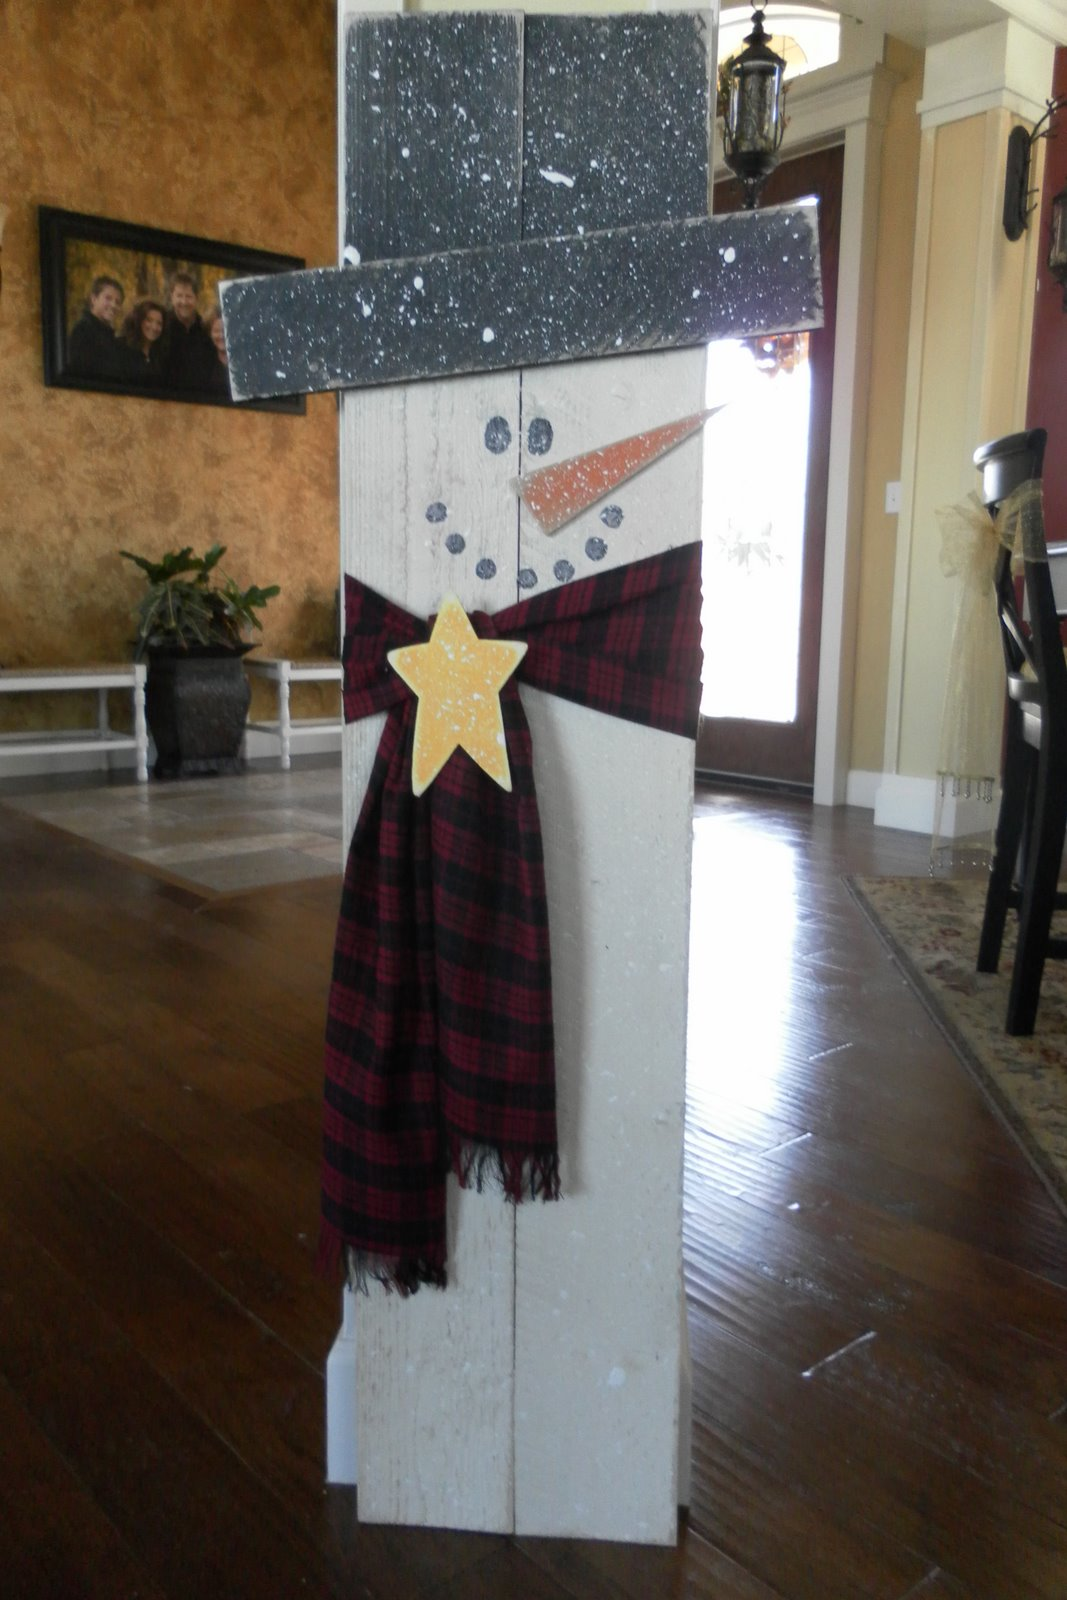 1000 images about pallet crafting on pinterest snowflakes primitive scarecrows and planks - How to make a snowman out of wood planks ...